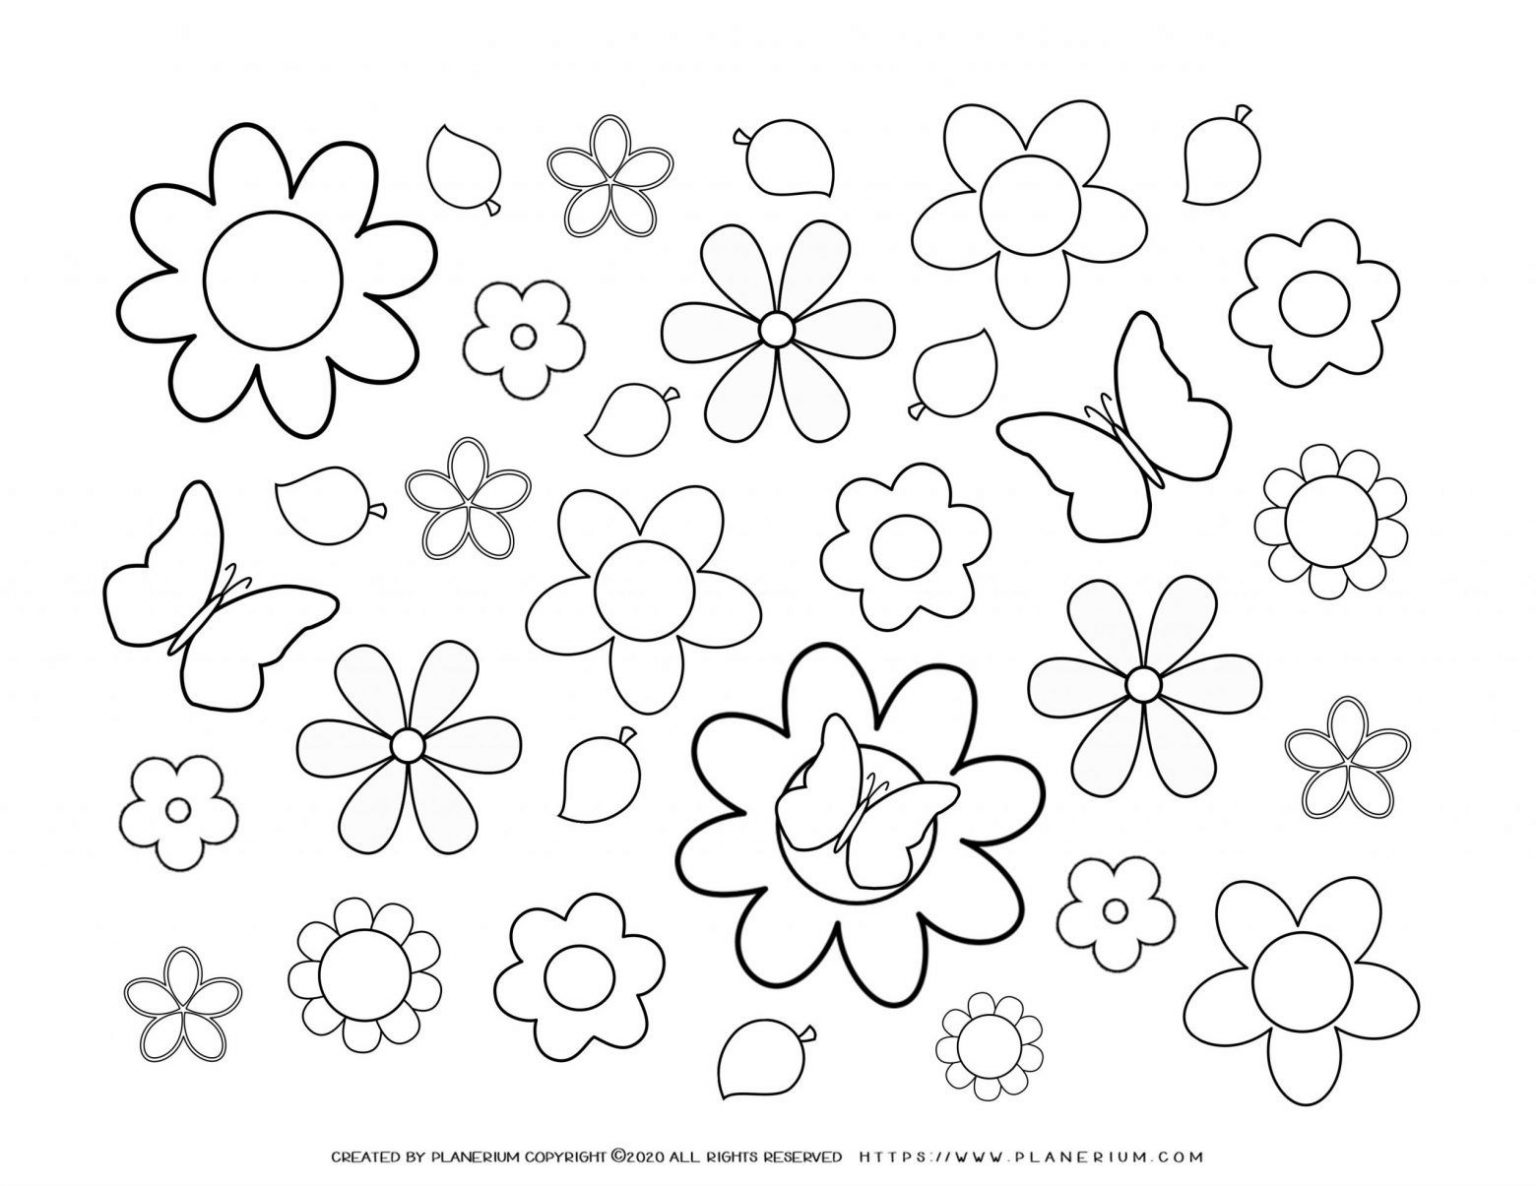 Spring season coloring pages | Flowers butterflies | Planerium